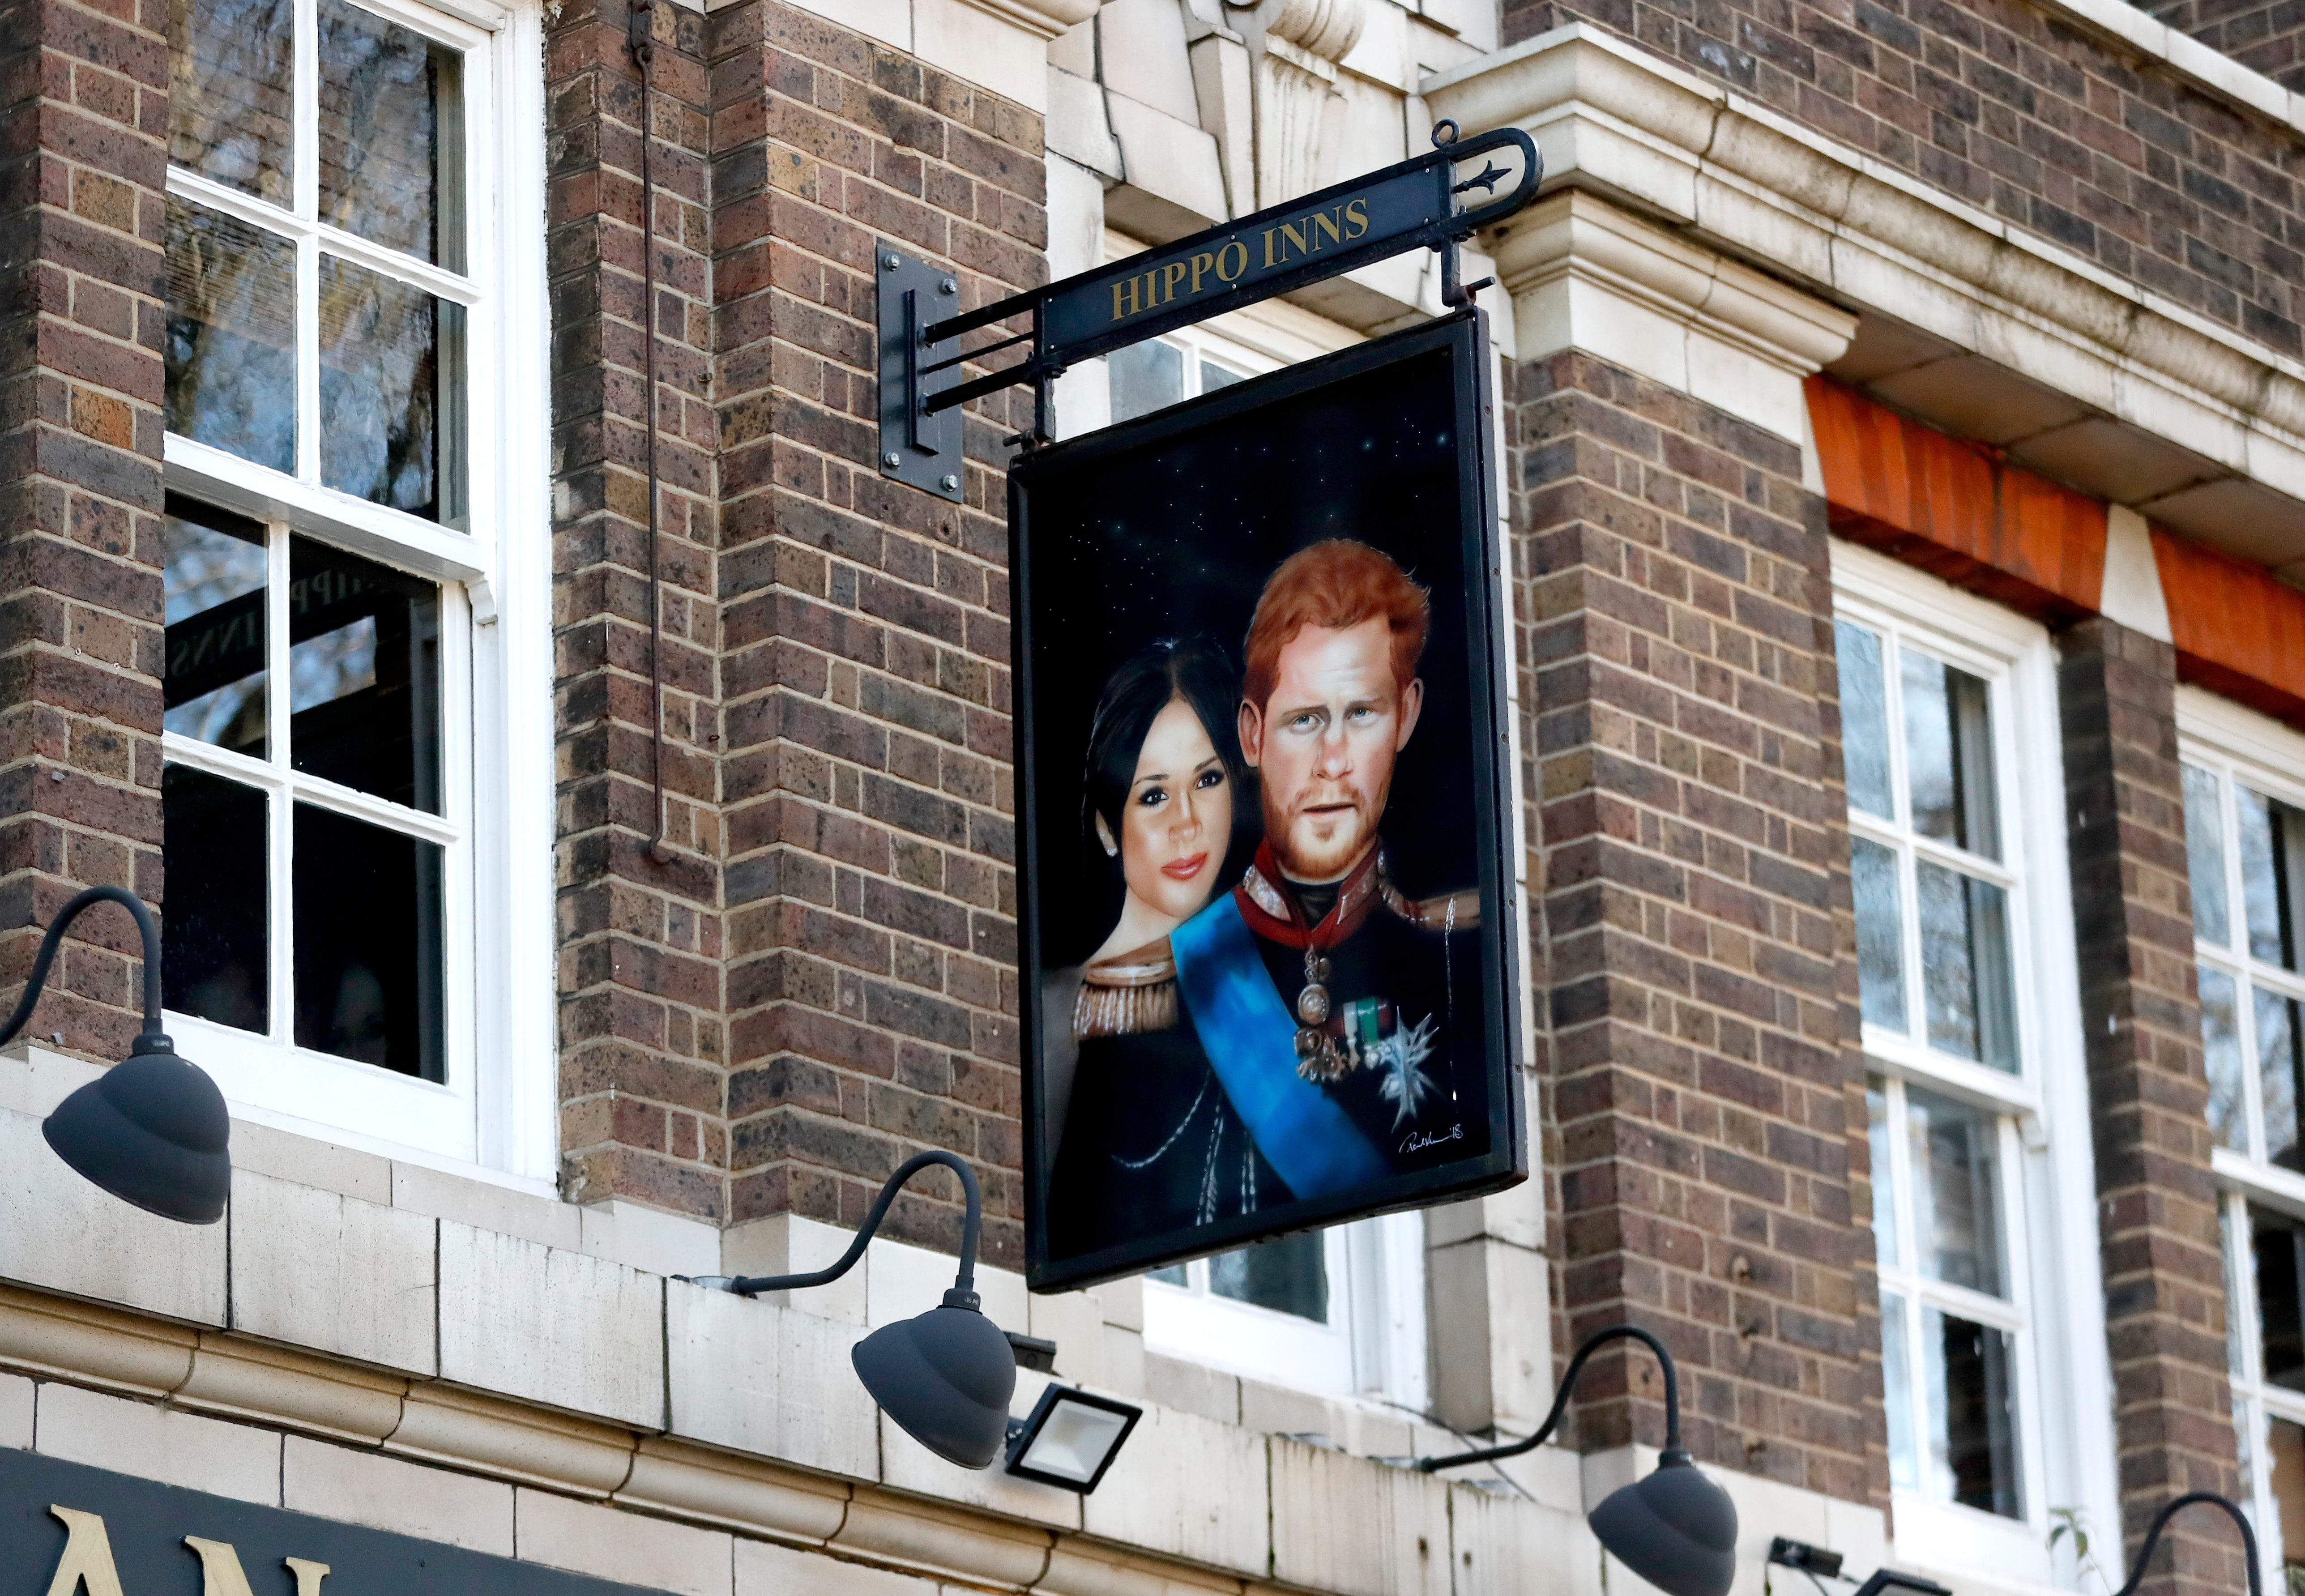 Black Britons never trusted the royal family. Meghan and Harry's interview made that easier